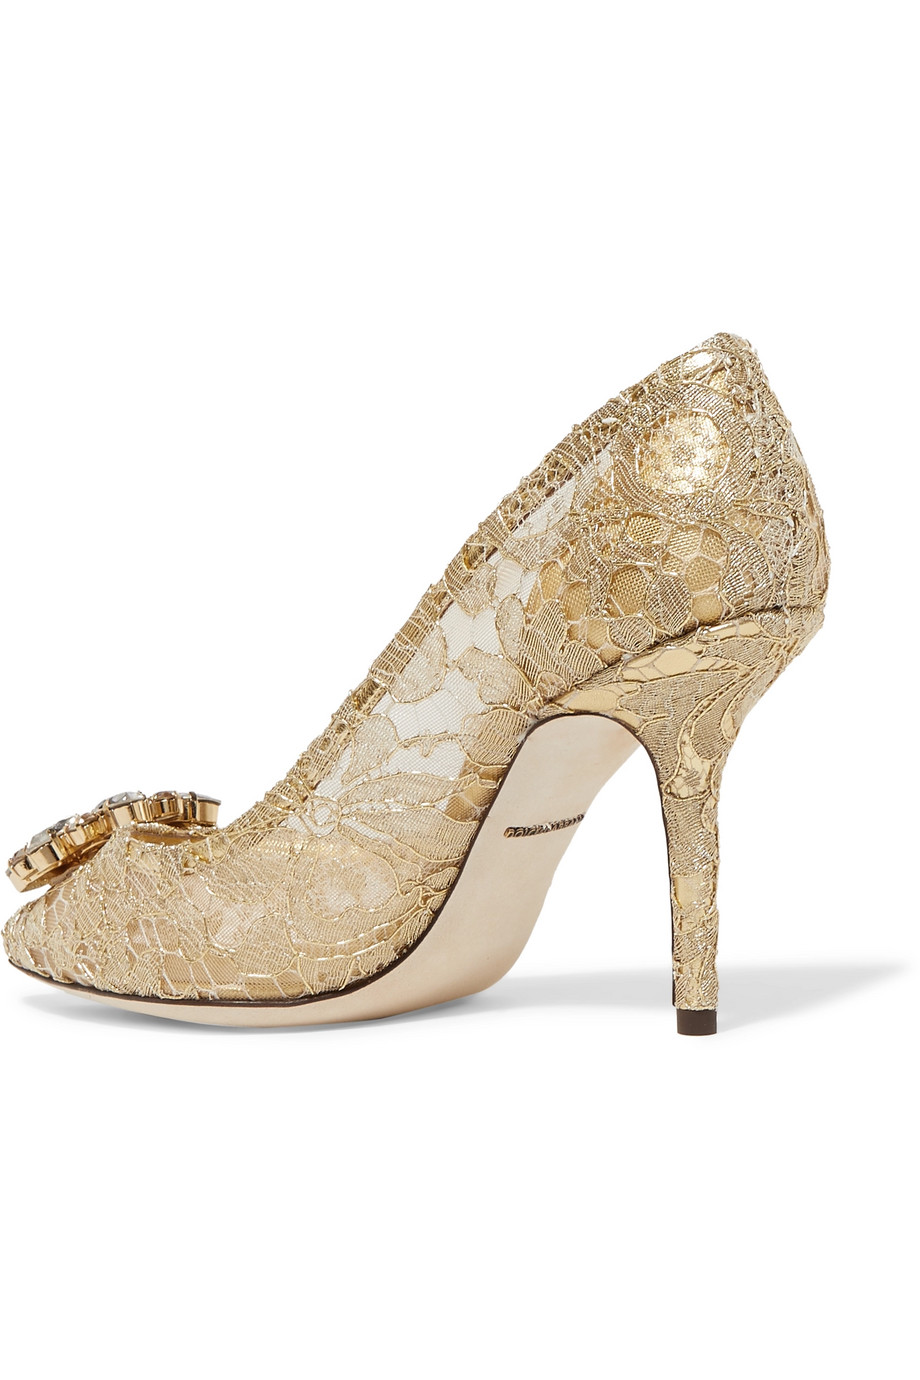 a5063d8811 Dolce & Gabbana Crystal-embellished corded lace pumps